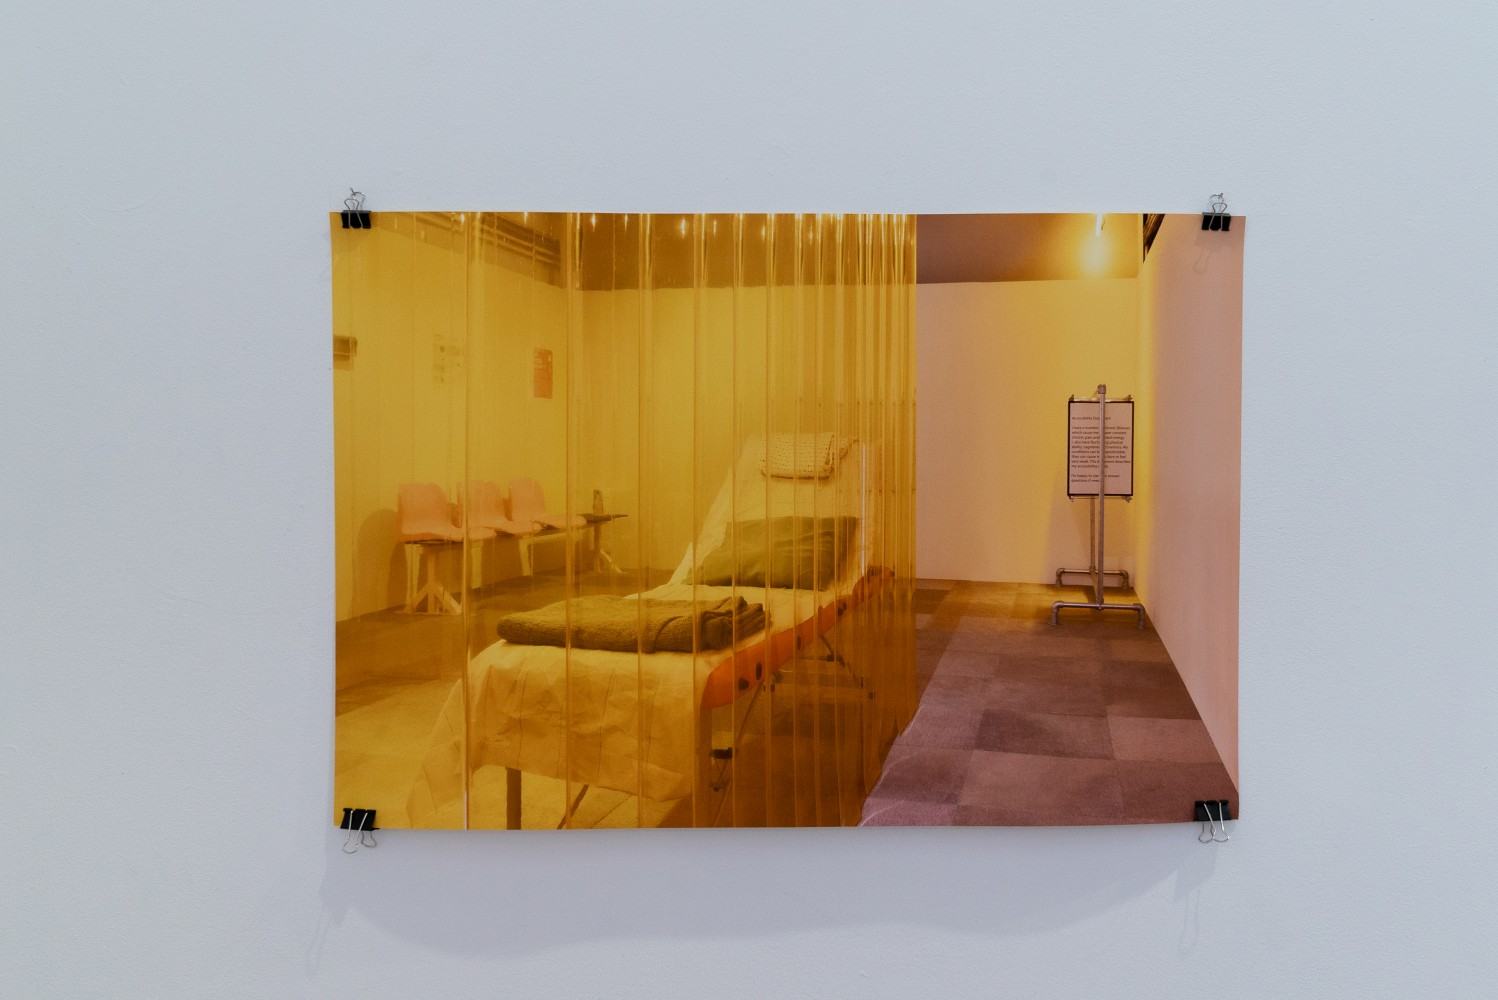 This is an image of an archival print photograph on paper on a white wall. The photograph is hung from using pins and black crocodile clips in all four corners. The photograph shows us a white walled room, with a grey carpeted floor, bathed in a yellow light. On the left hand side of the photograph there is a hospital trolly surrounded by translucent plastic yellow curtains and on our right hand side in the background of the room there is a rail with large charts hanging from it.